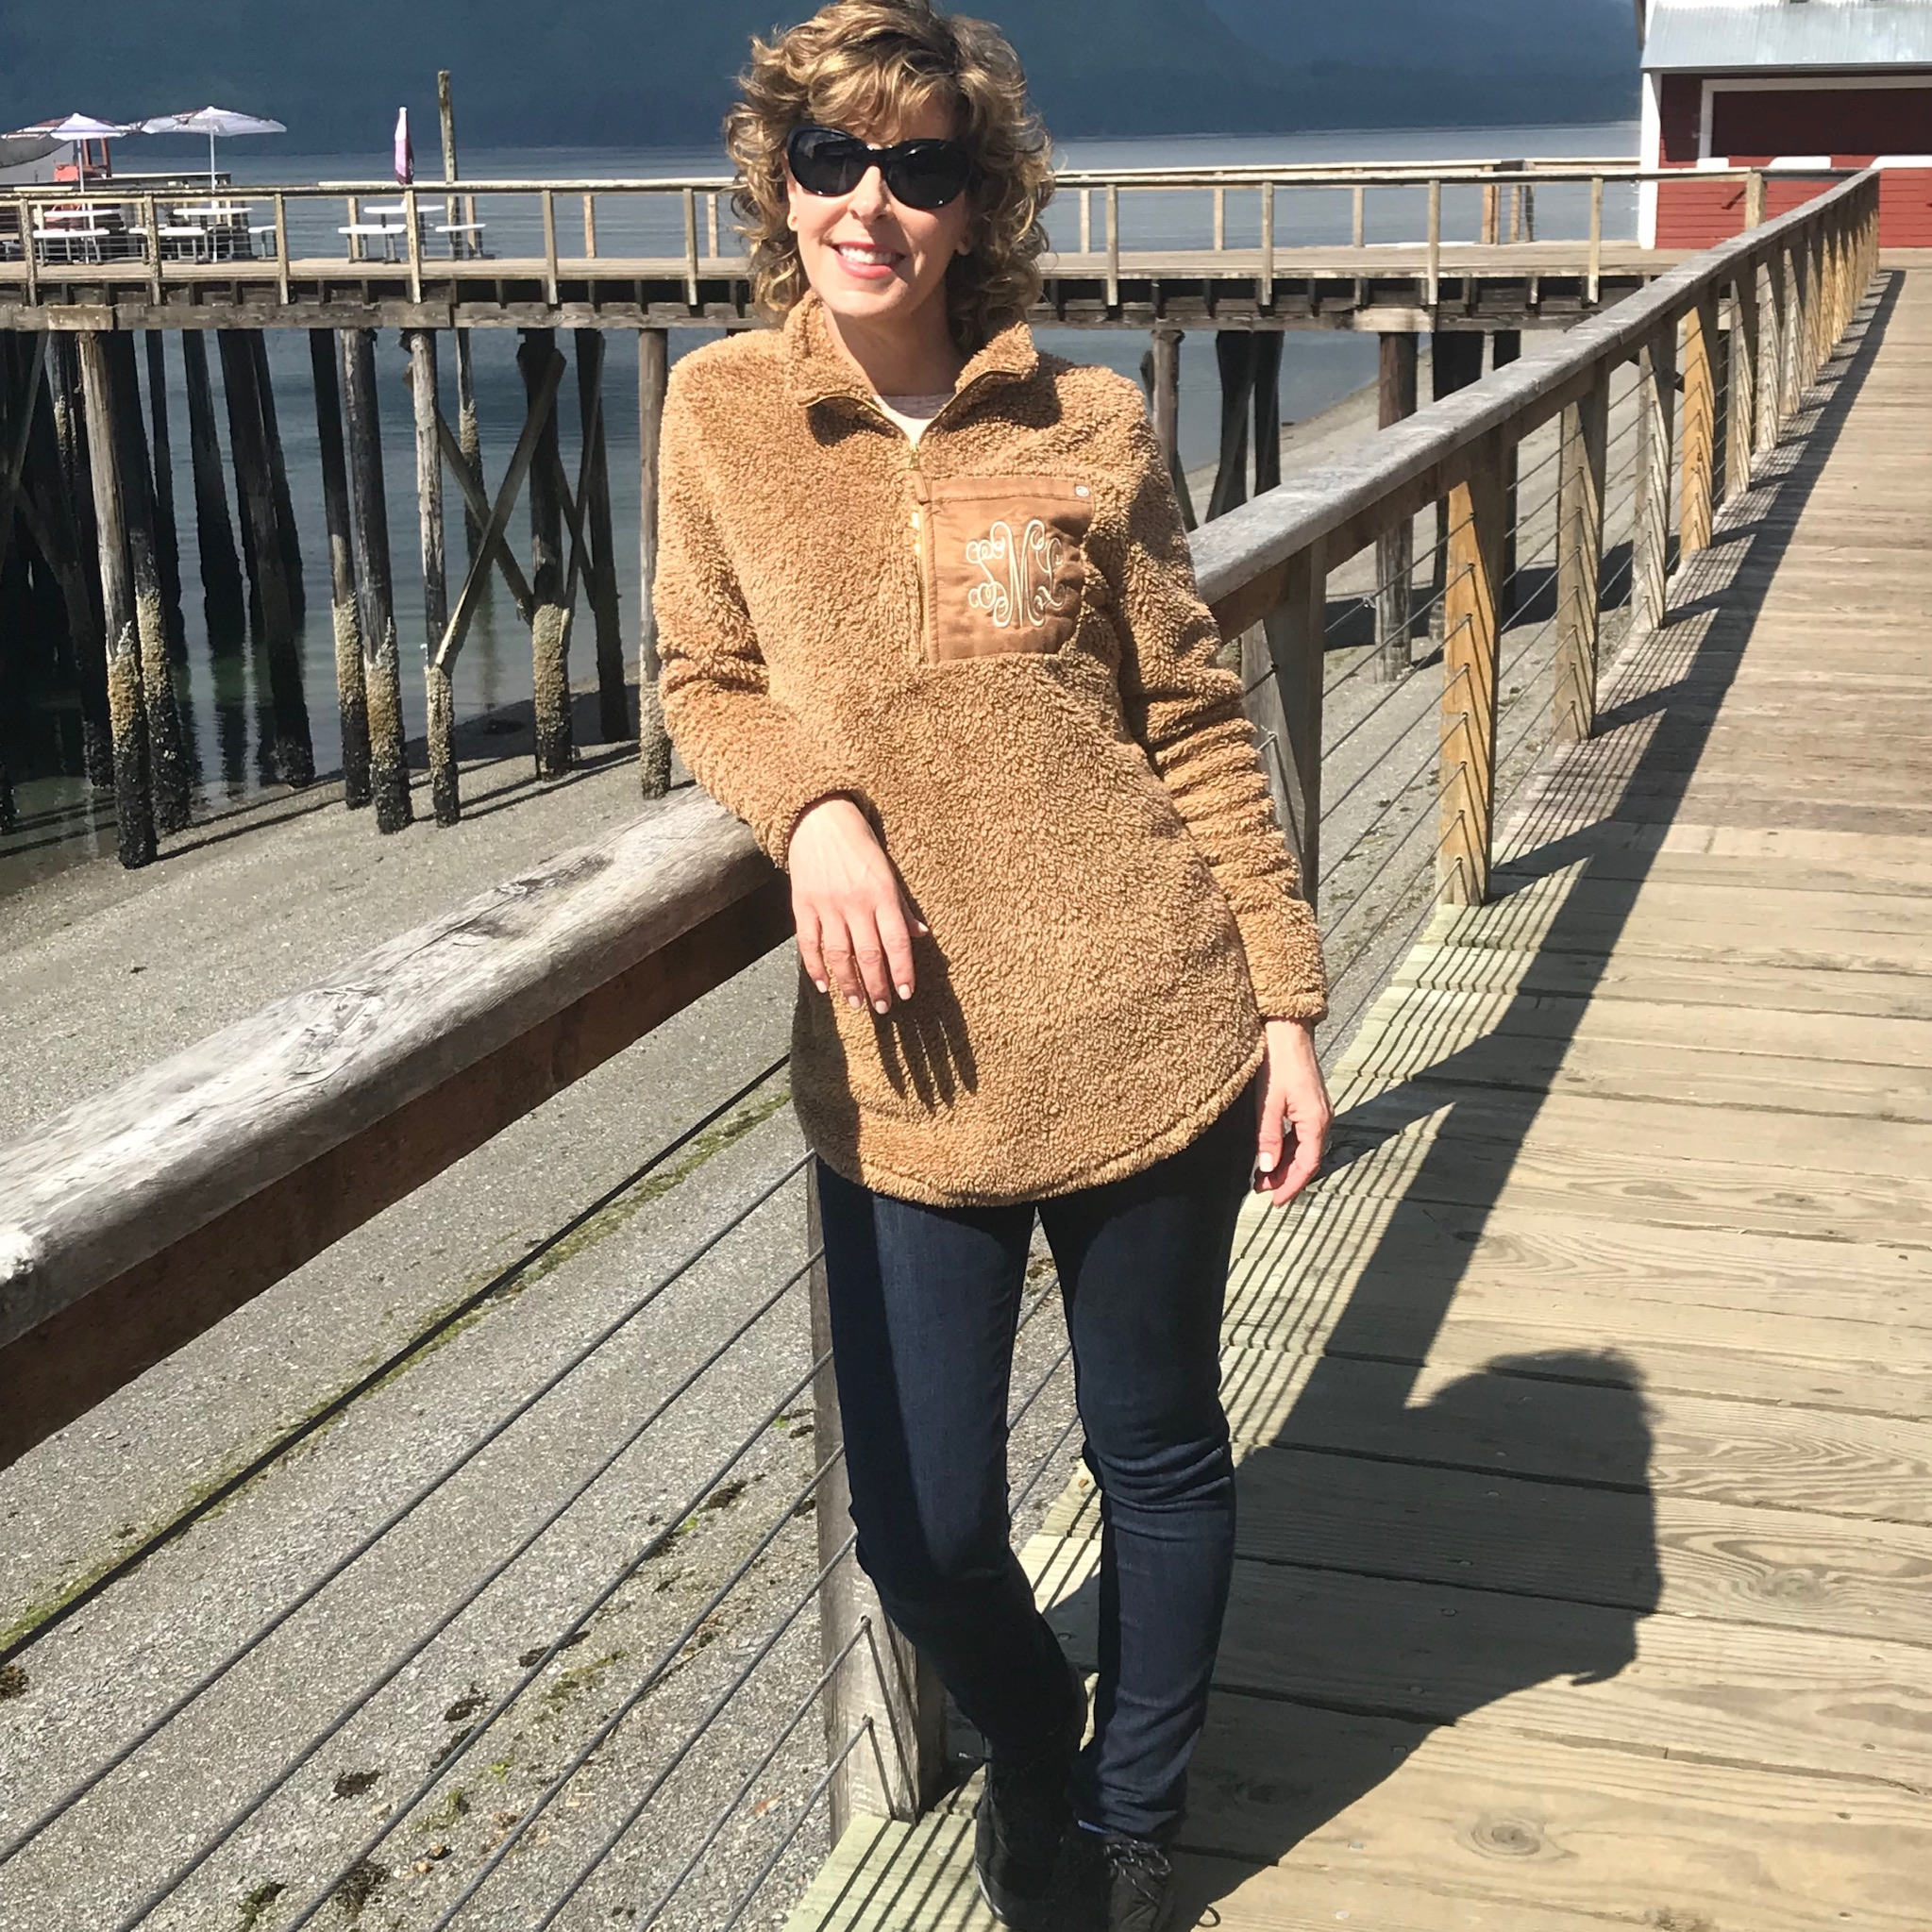 woman in tan fuzzy tunic leaning against railing